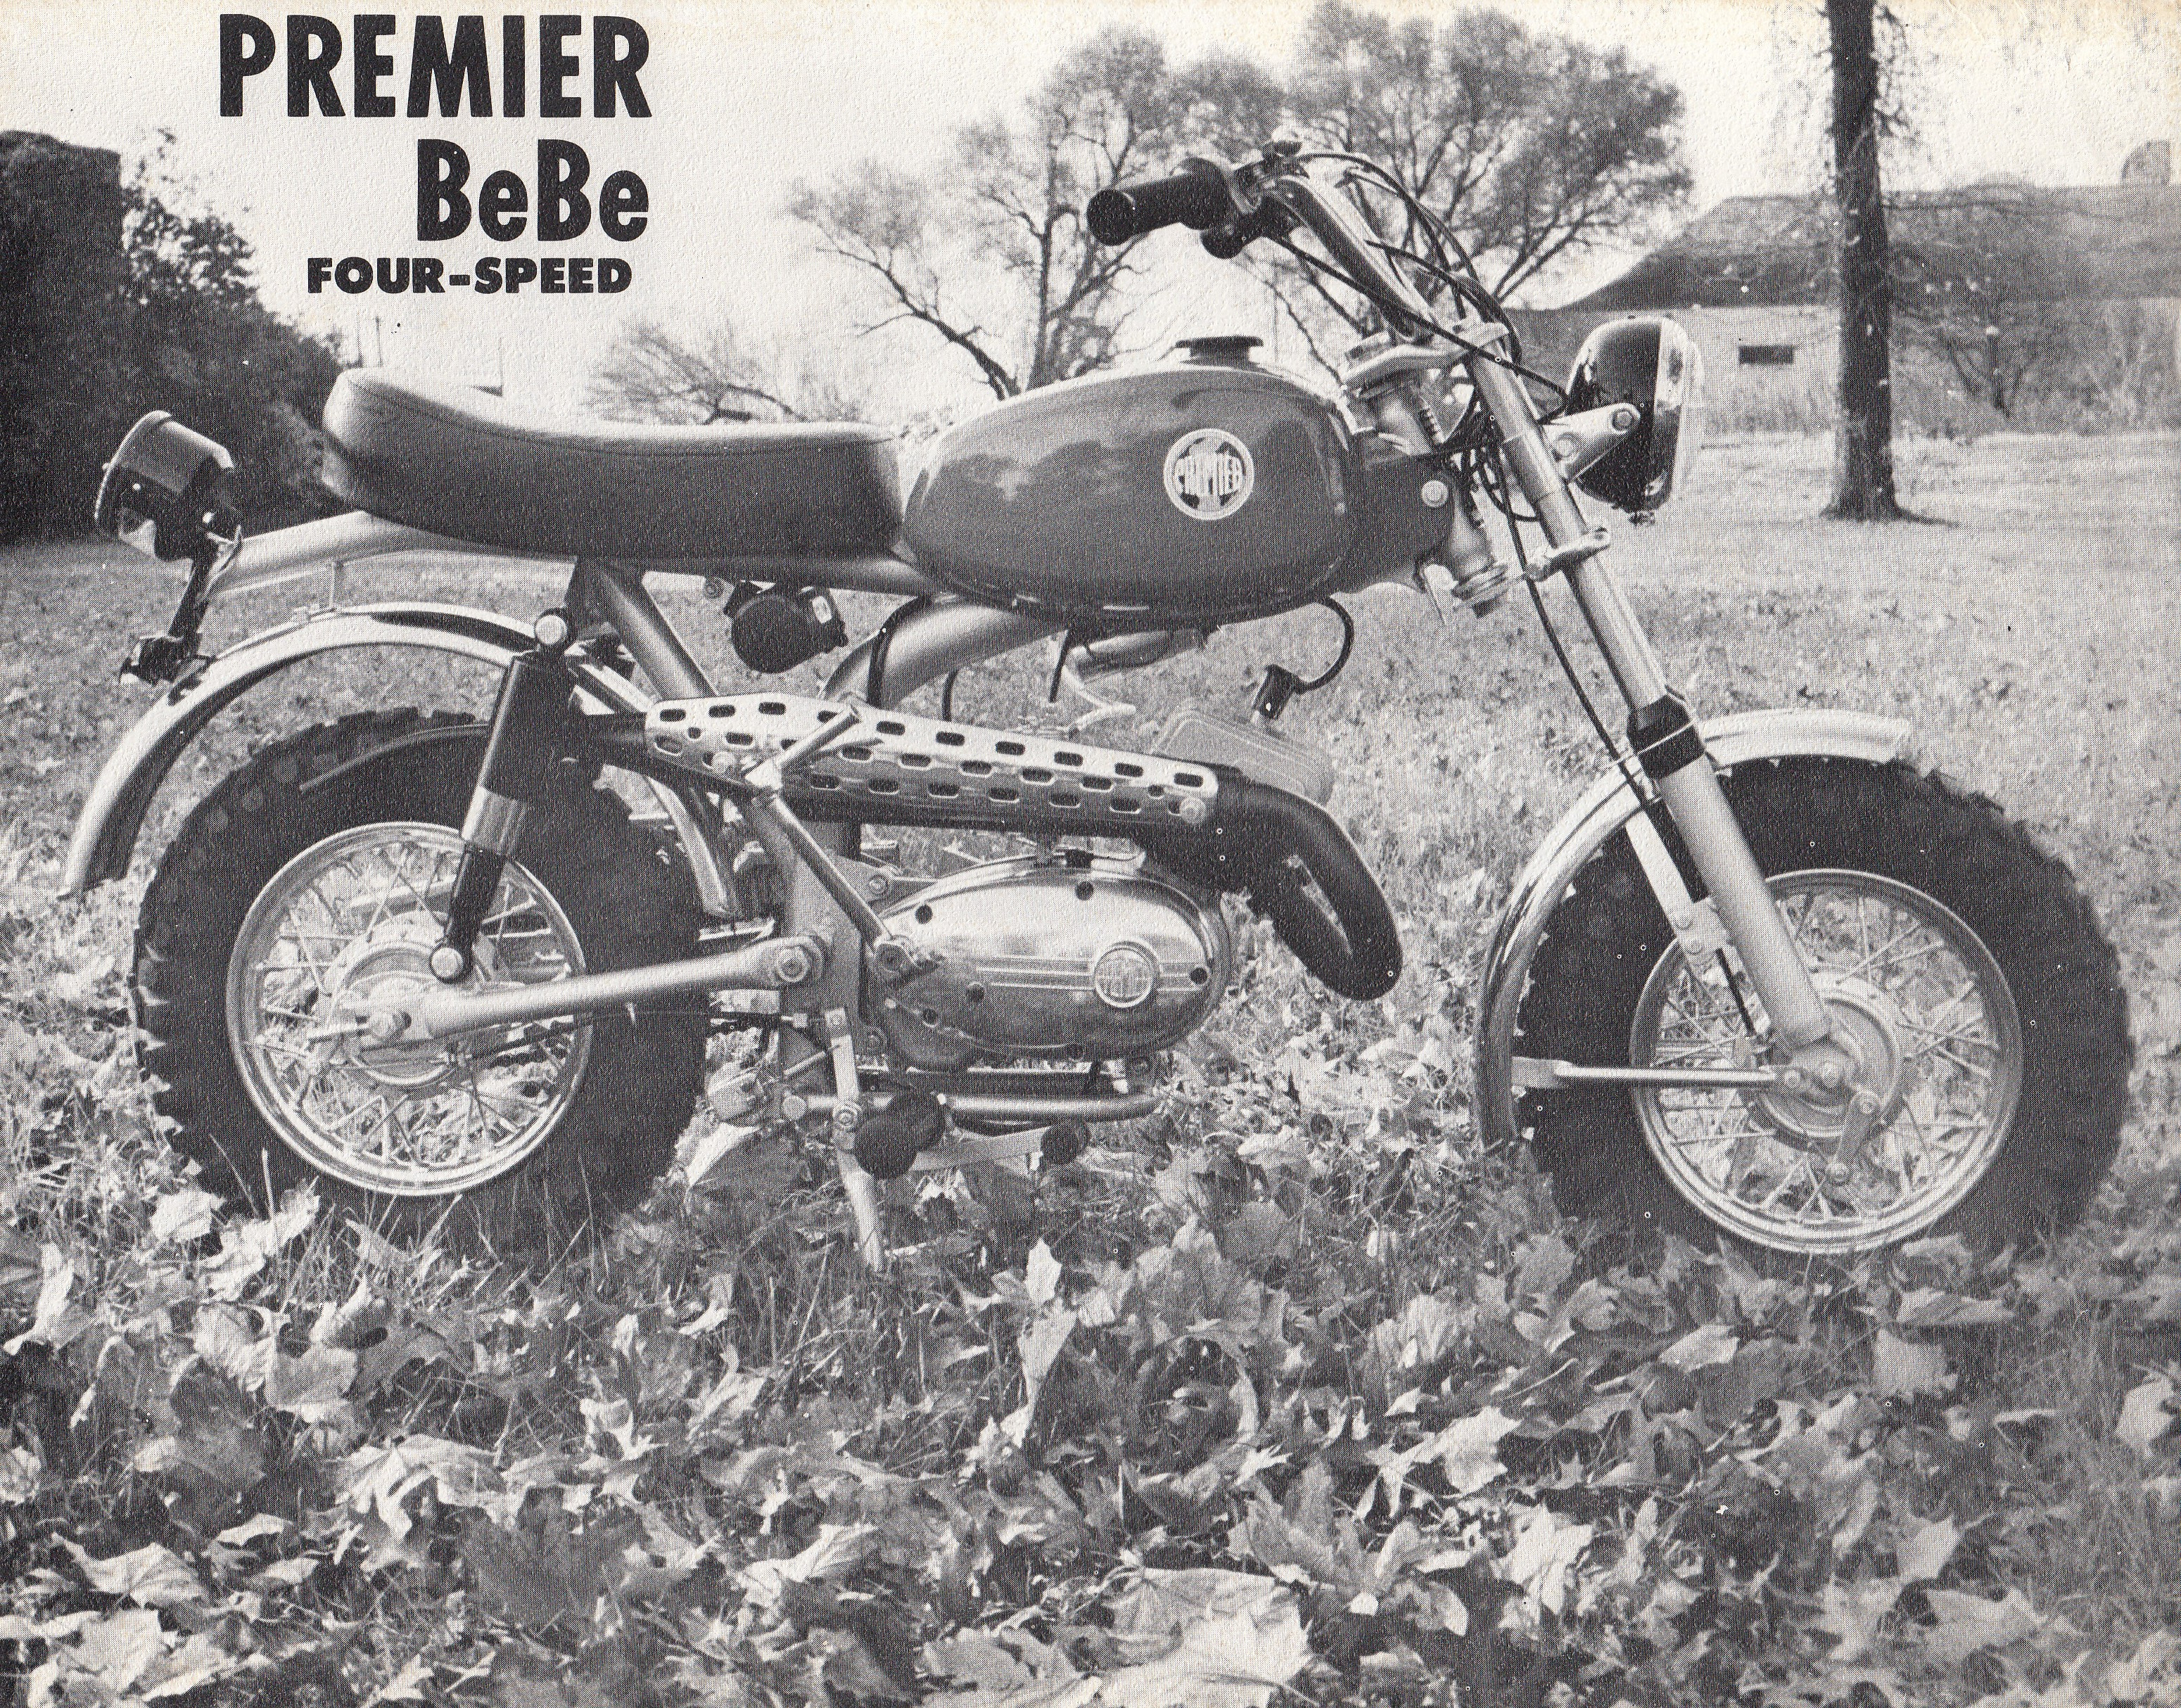 Brochure - Premier Be Be four-speed mini bike